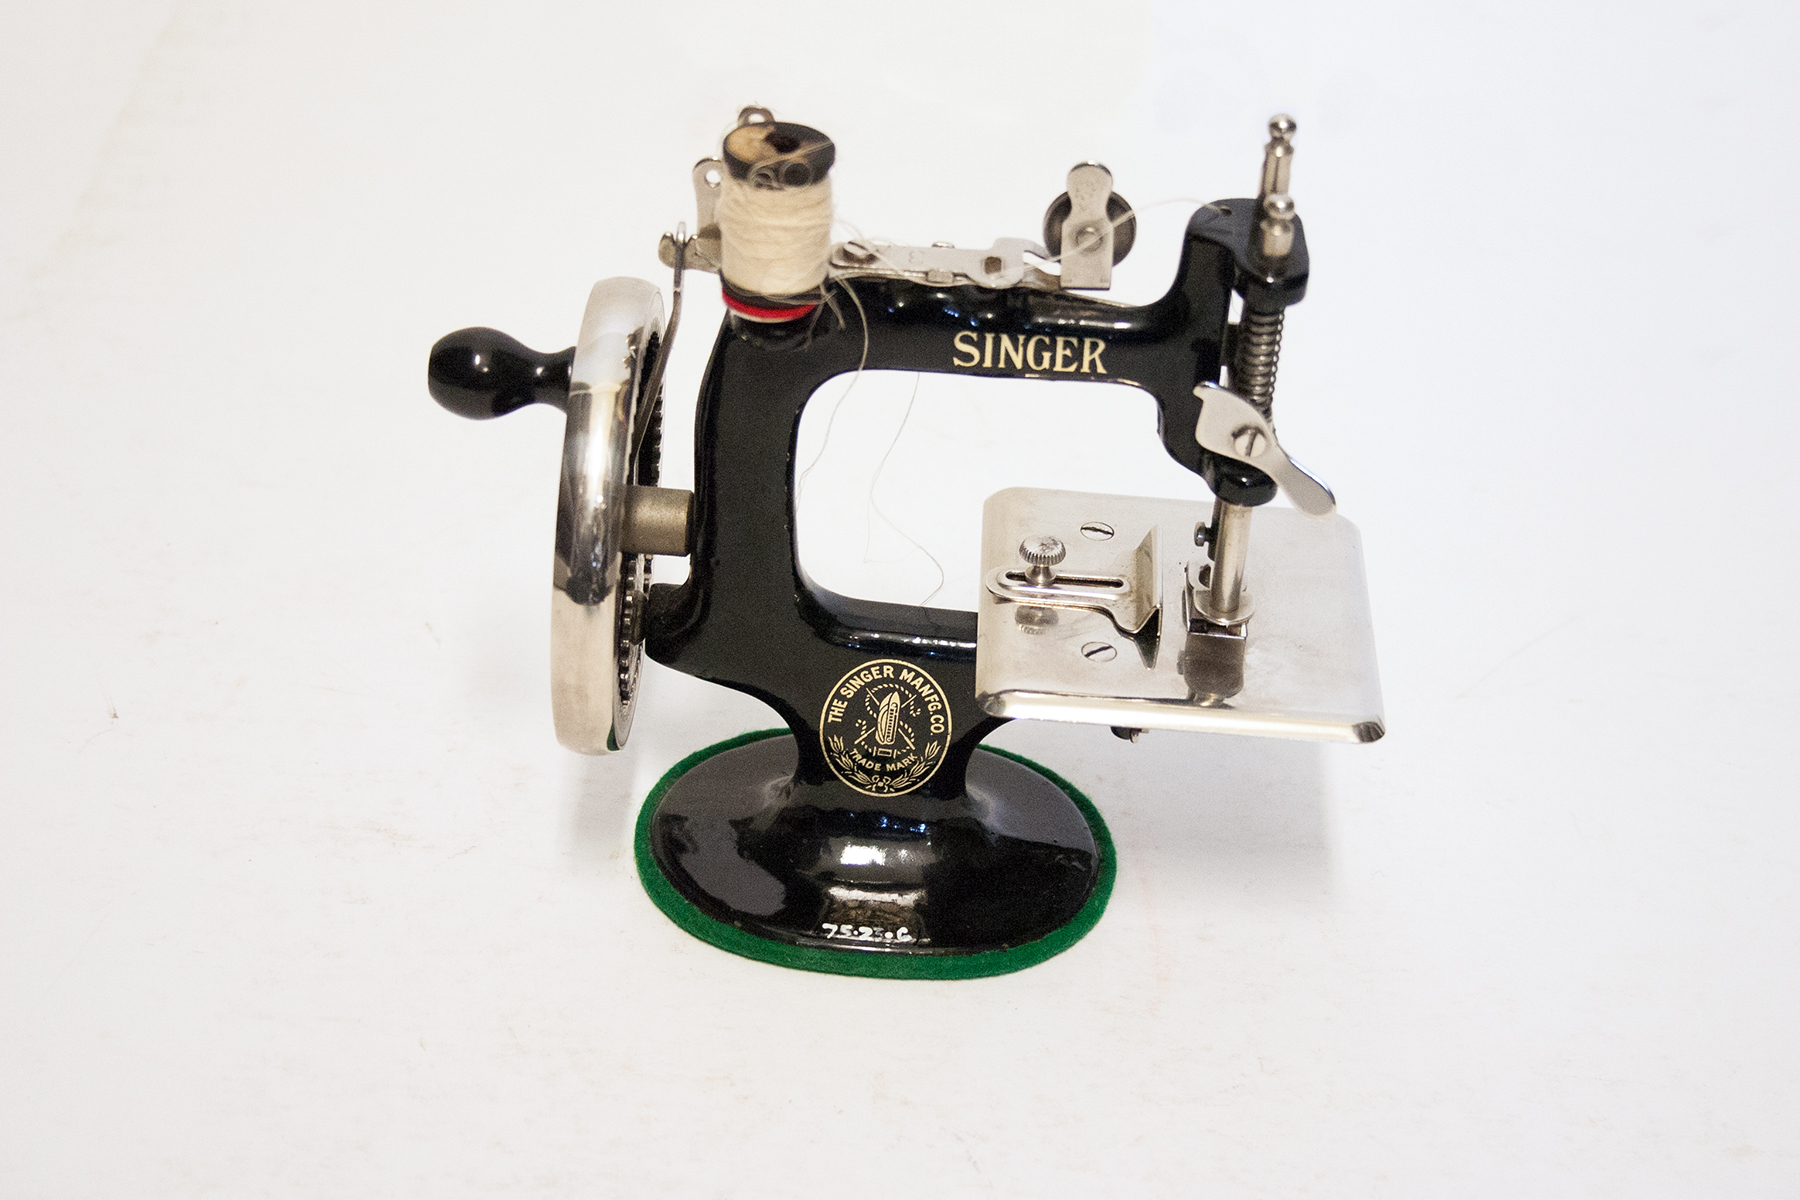 """A cast iron sewing machine that has a black body with a gold manufacturing label and text that reads """"SINGER"""" in gold letters at the top, with a green ring around the base, a metal balance wheel on the left side of the machine, a bobbin winder with white thread and thread take up on the top, and a silver bed plate and pressure bar on the right side, photographed on a plain white background"""